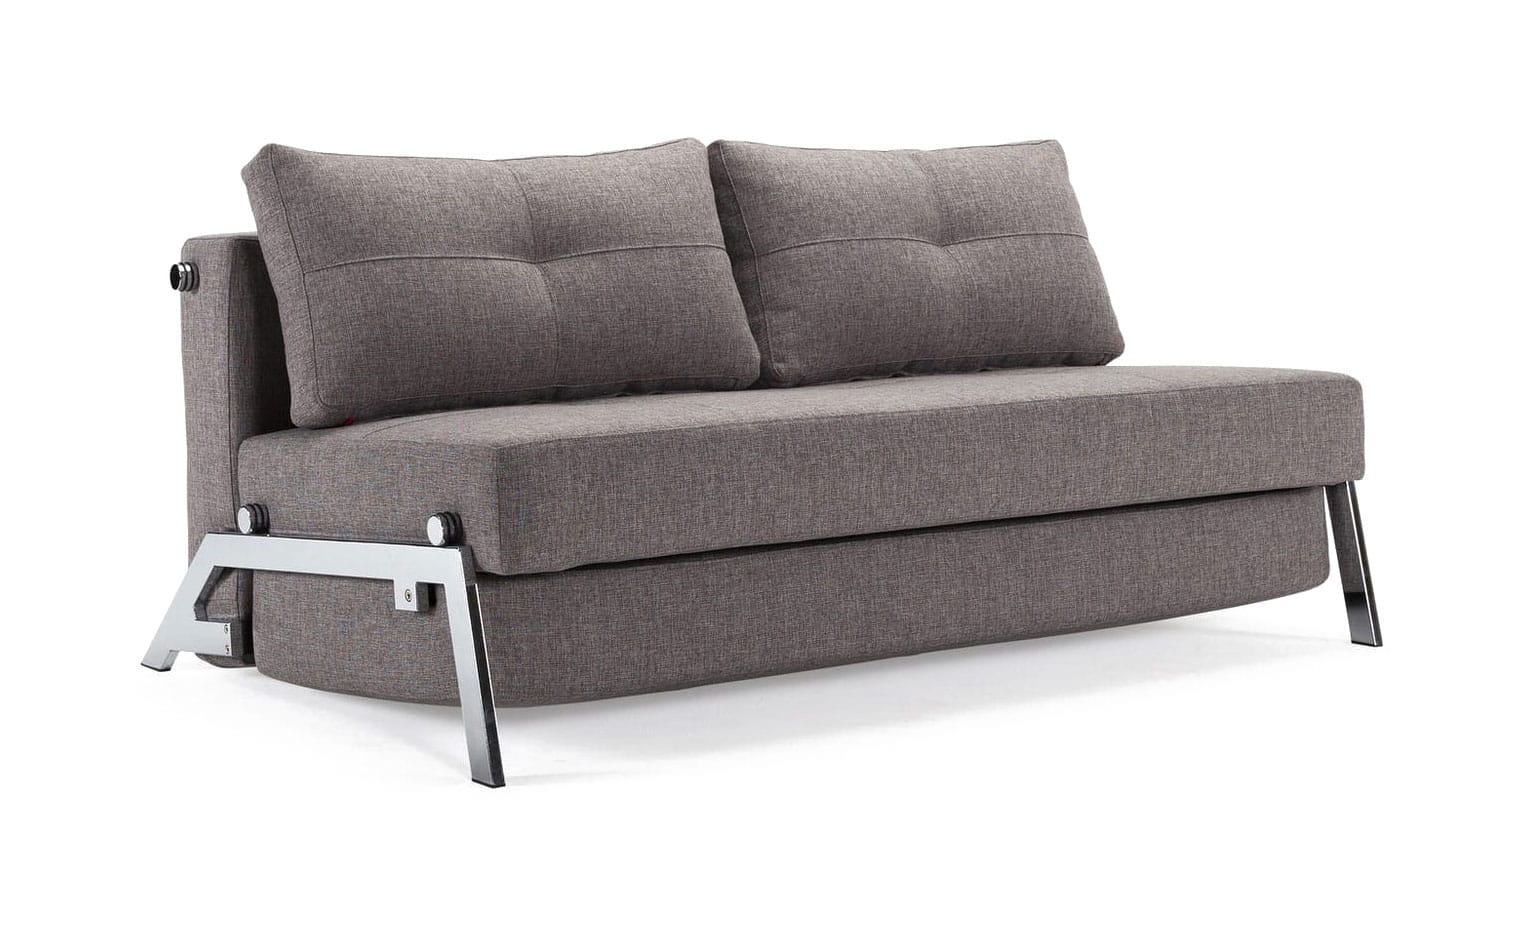 Cubed 02 Deluxe Sofa Queen Size Mixed Dance Gray By Innovation